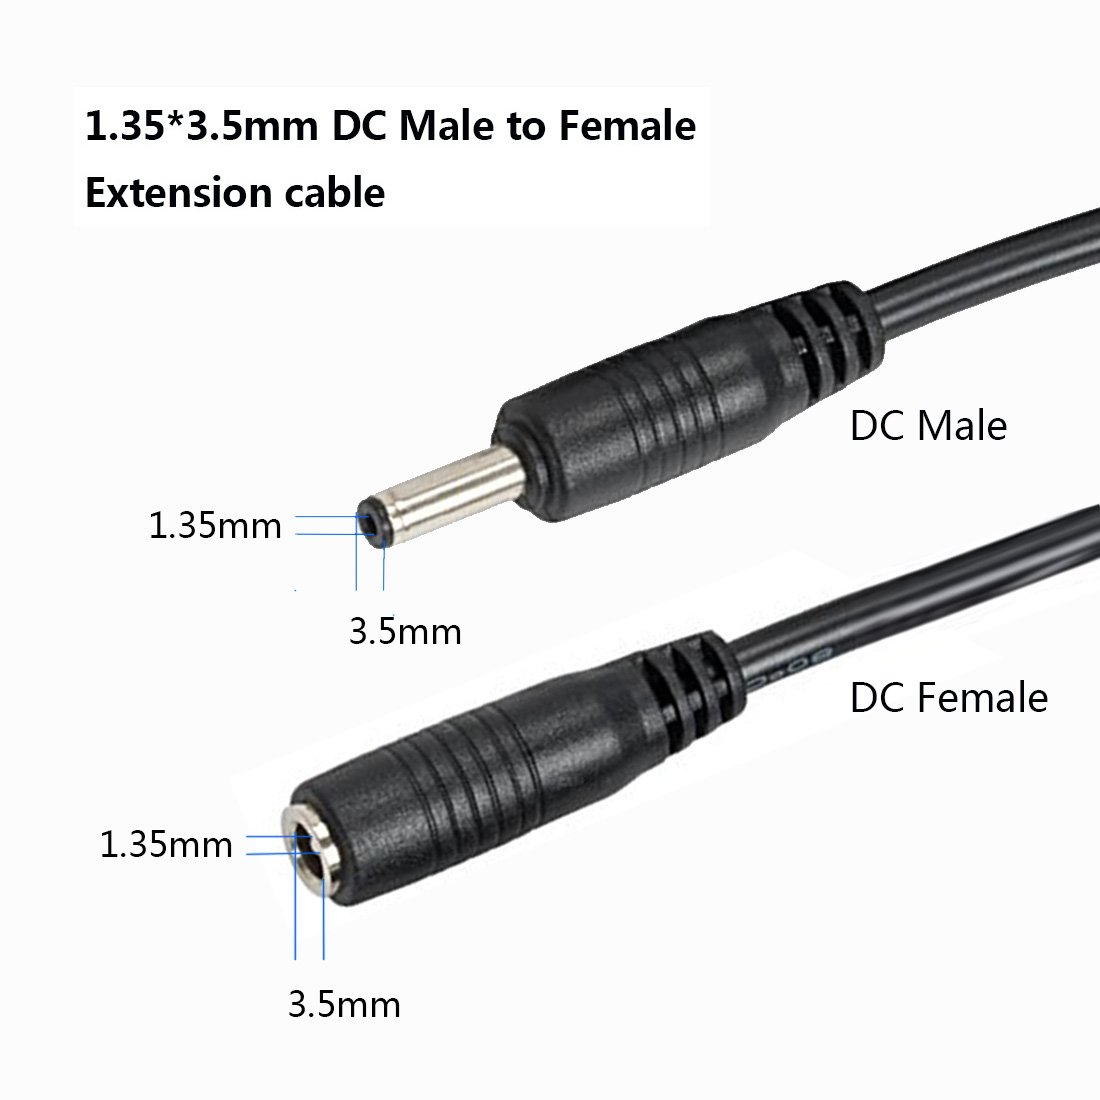 Liwinting 10m DC Power Extension Cable 1.35mm // 3.5mm Male to Female Jack DC Power Cord Extension Cable for Cameras Parking Reverse Camera Power Adapter Black Wireless IP Camera